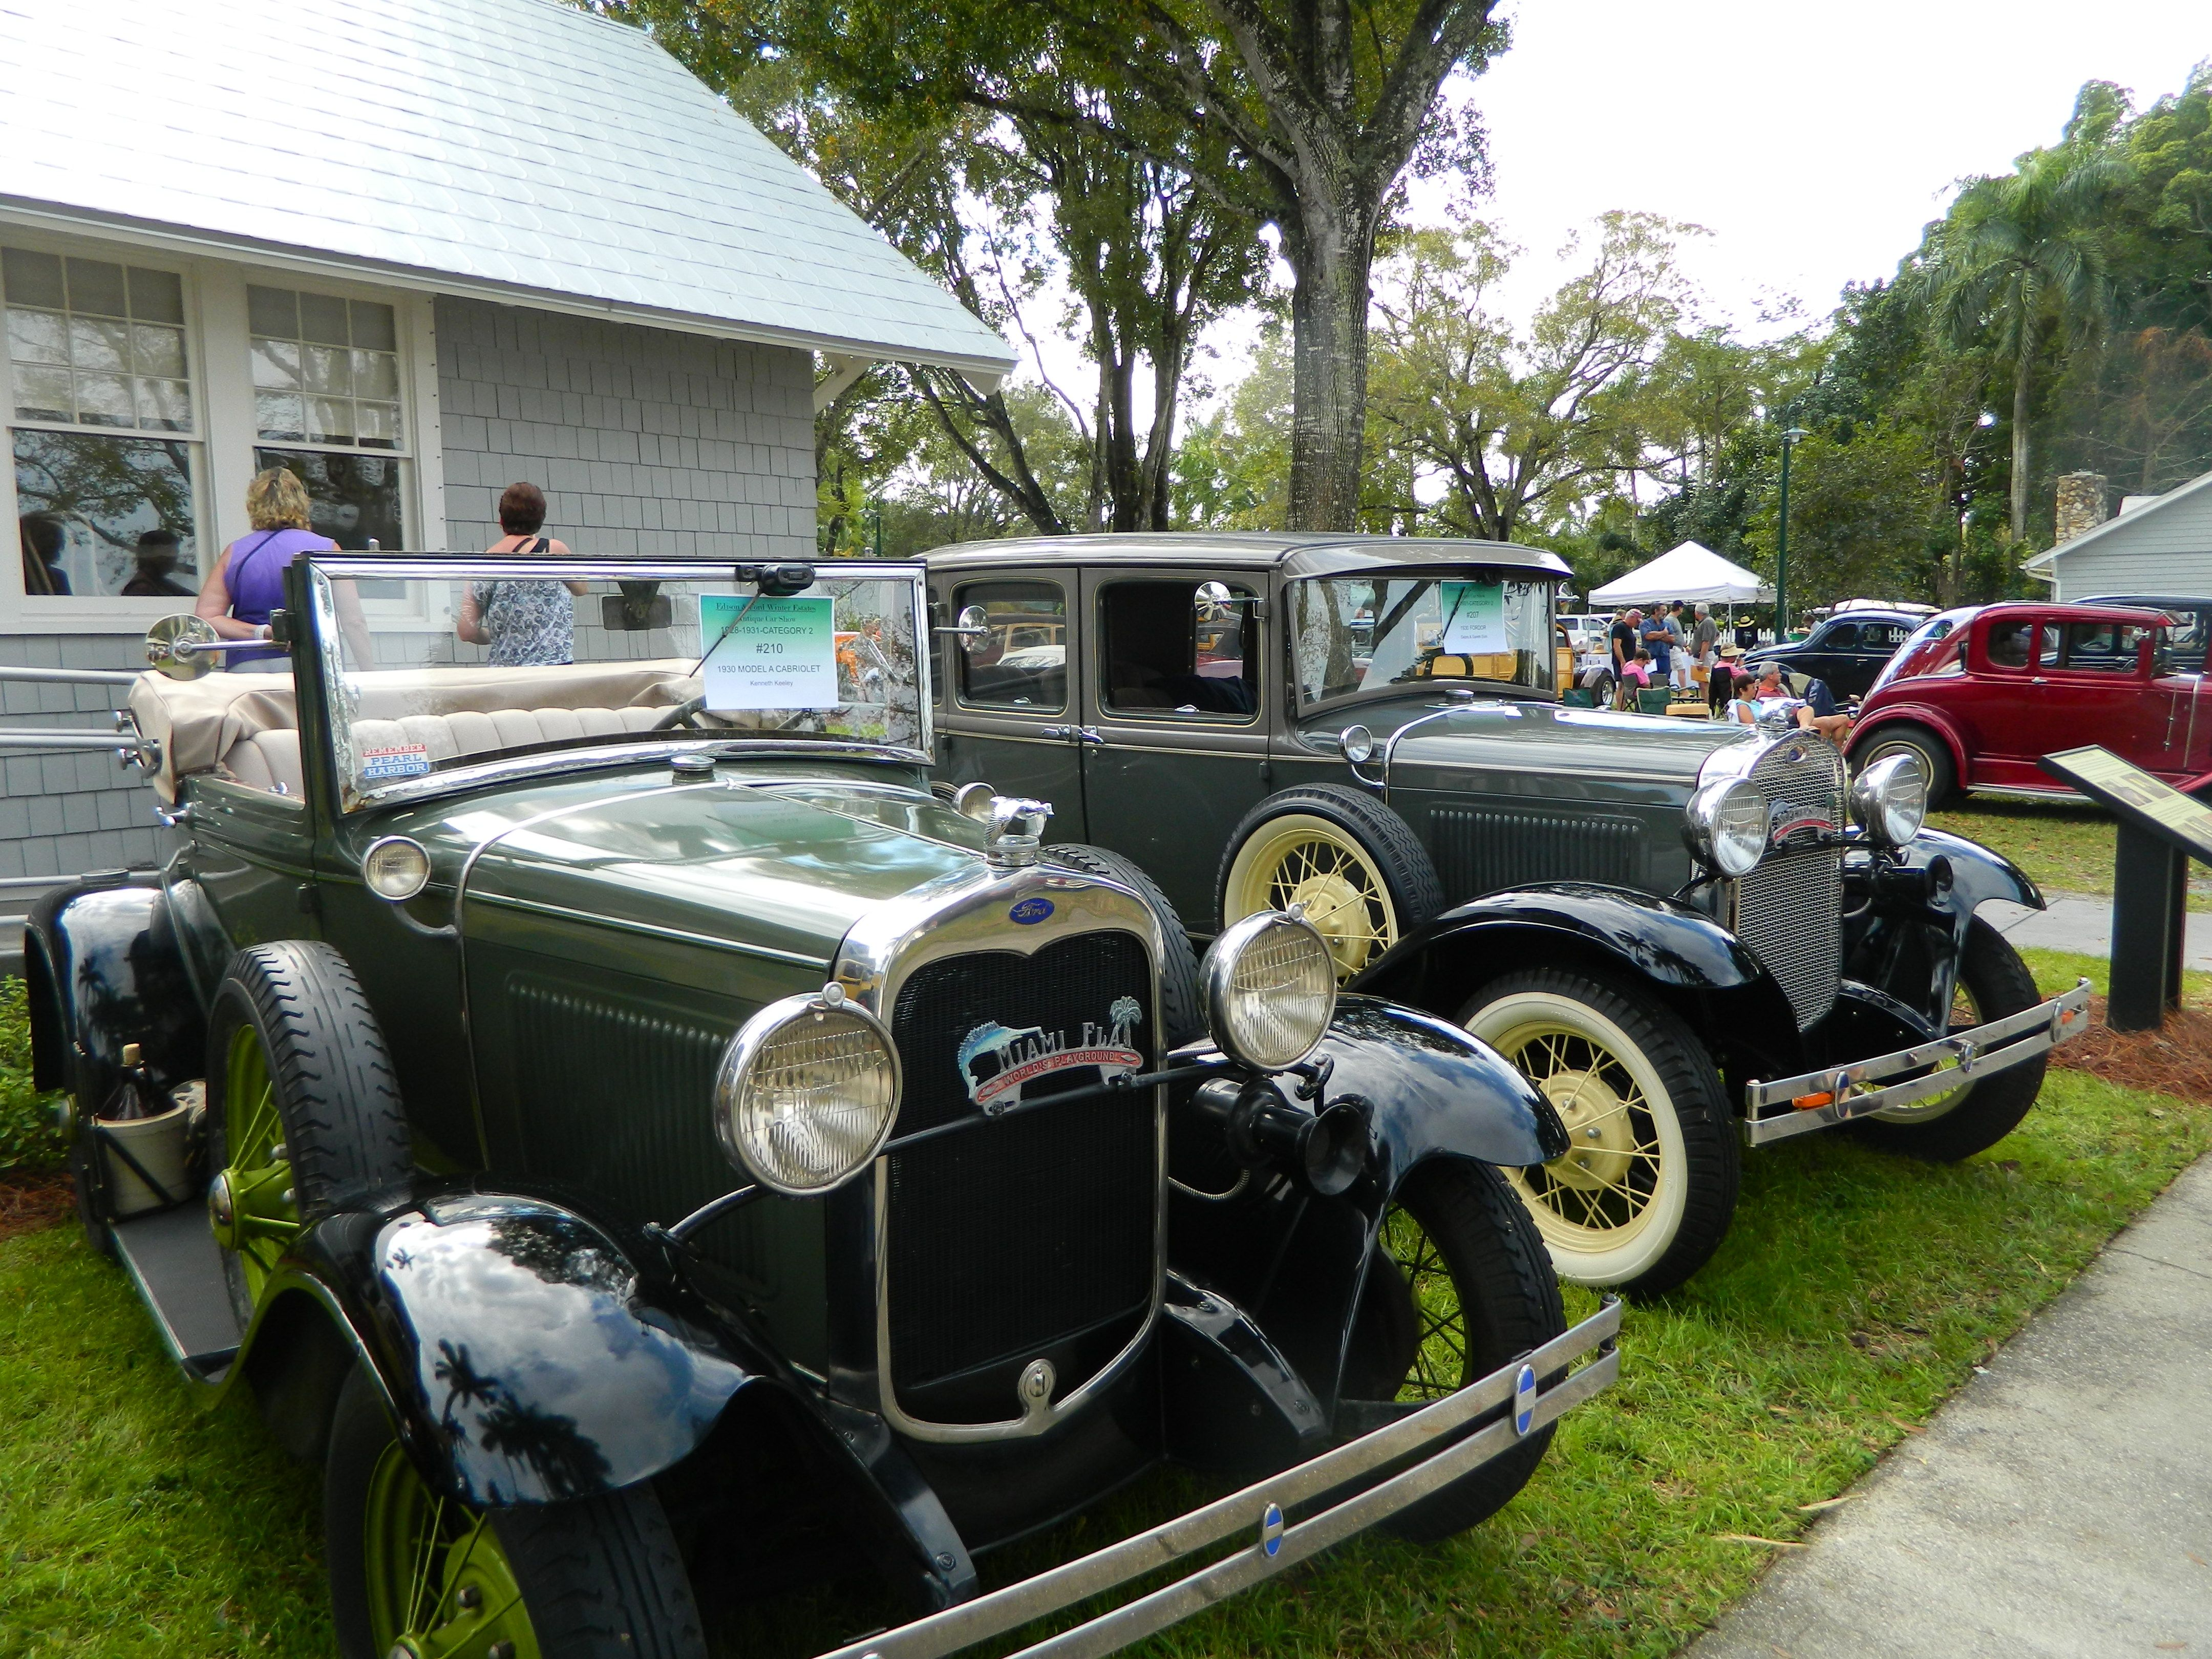 antique ford car show 2014 swfl fortmyers antiquecars henryford ford fort myers antique cars ford pinterest